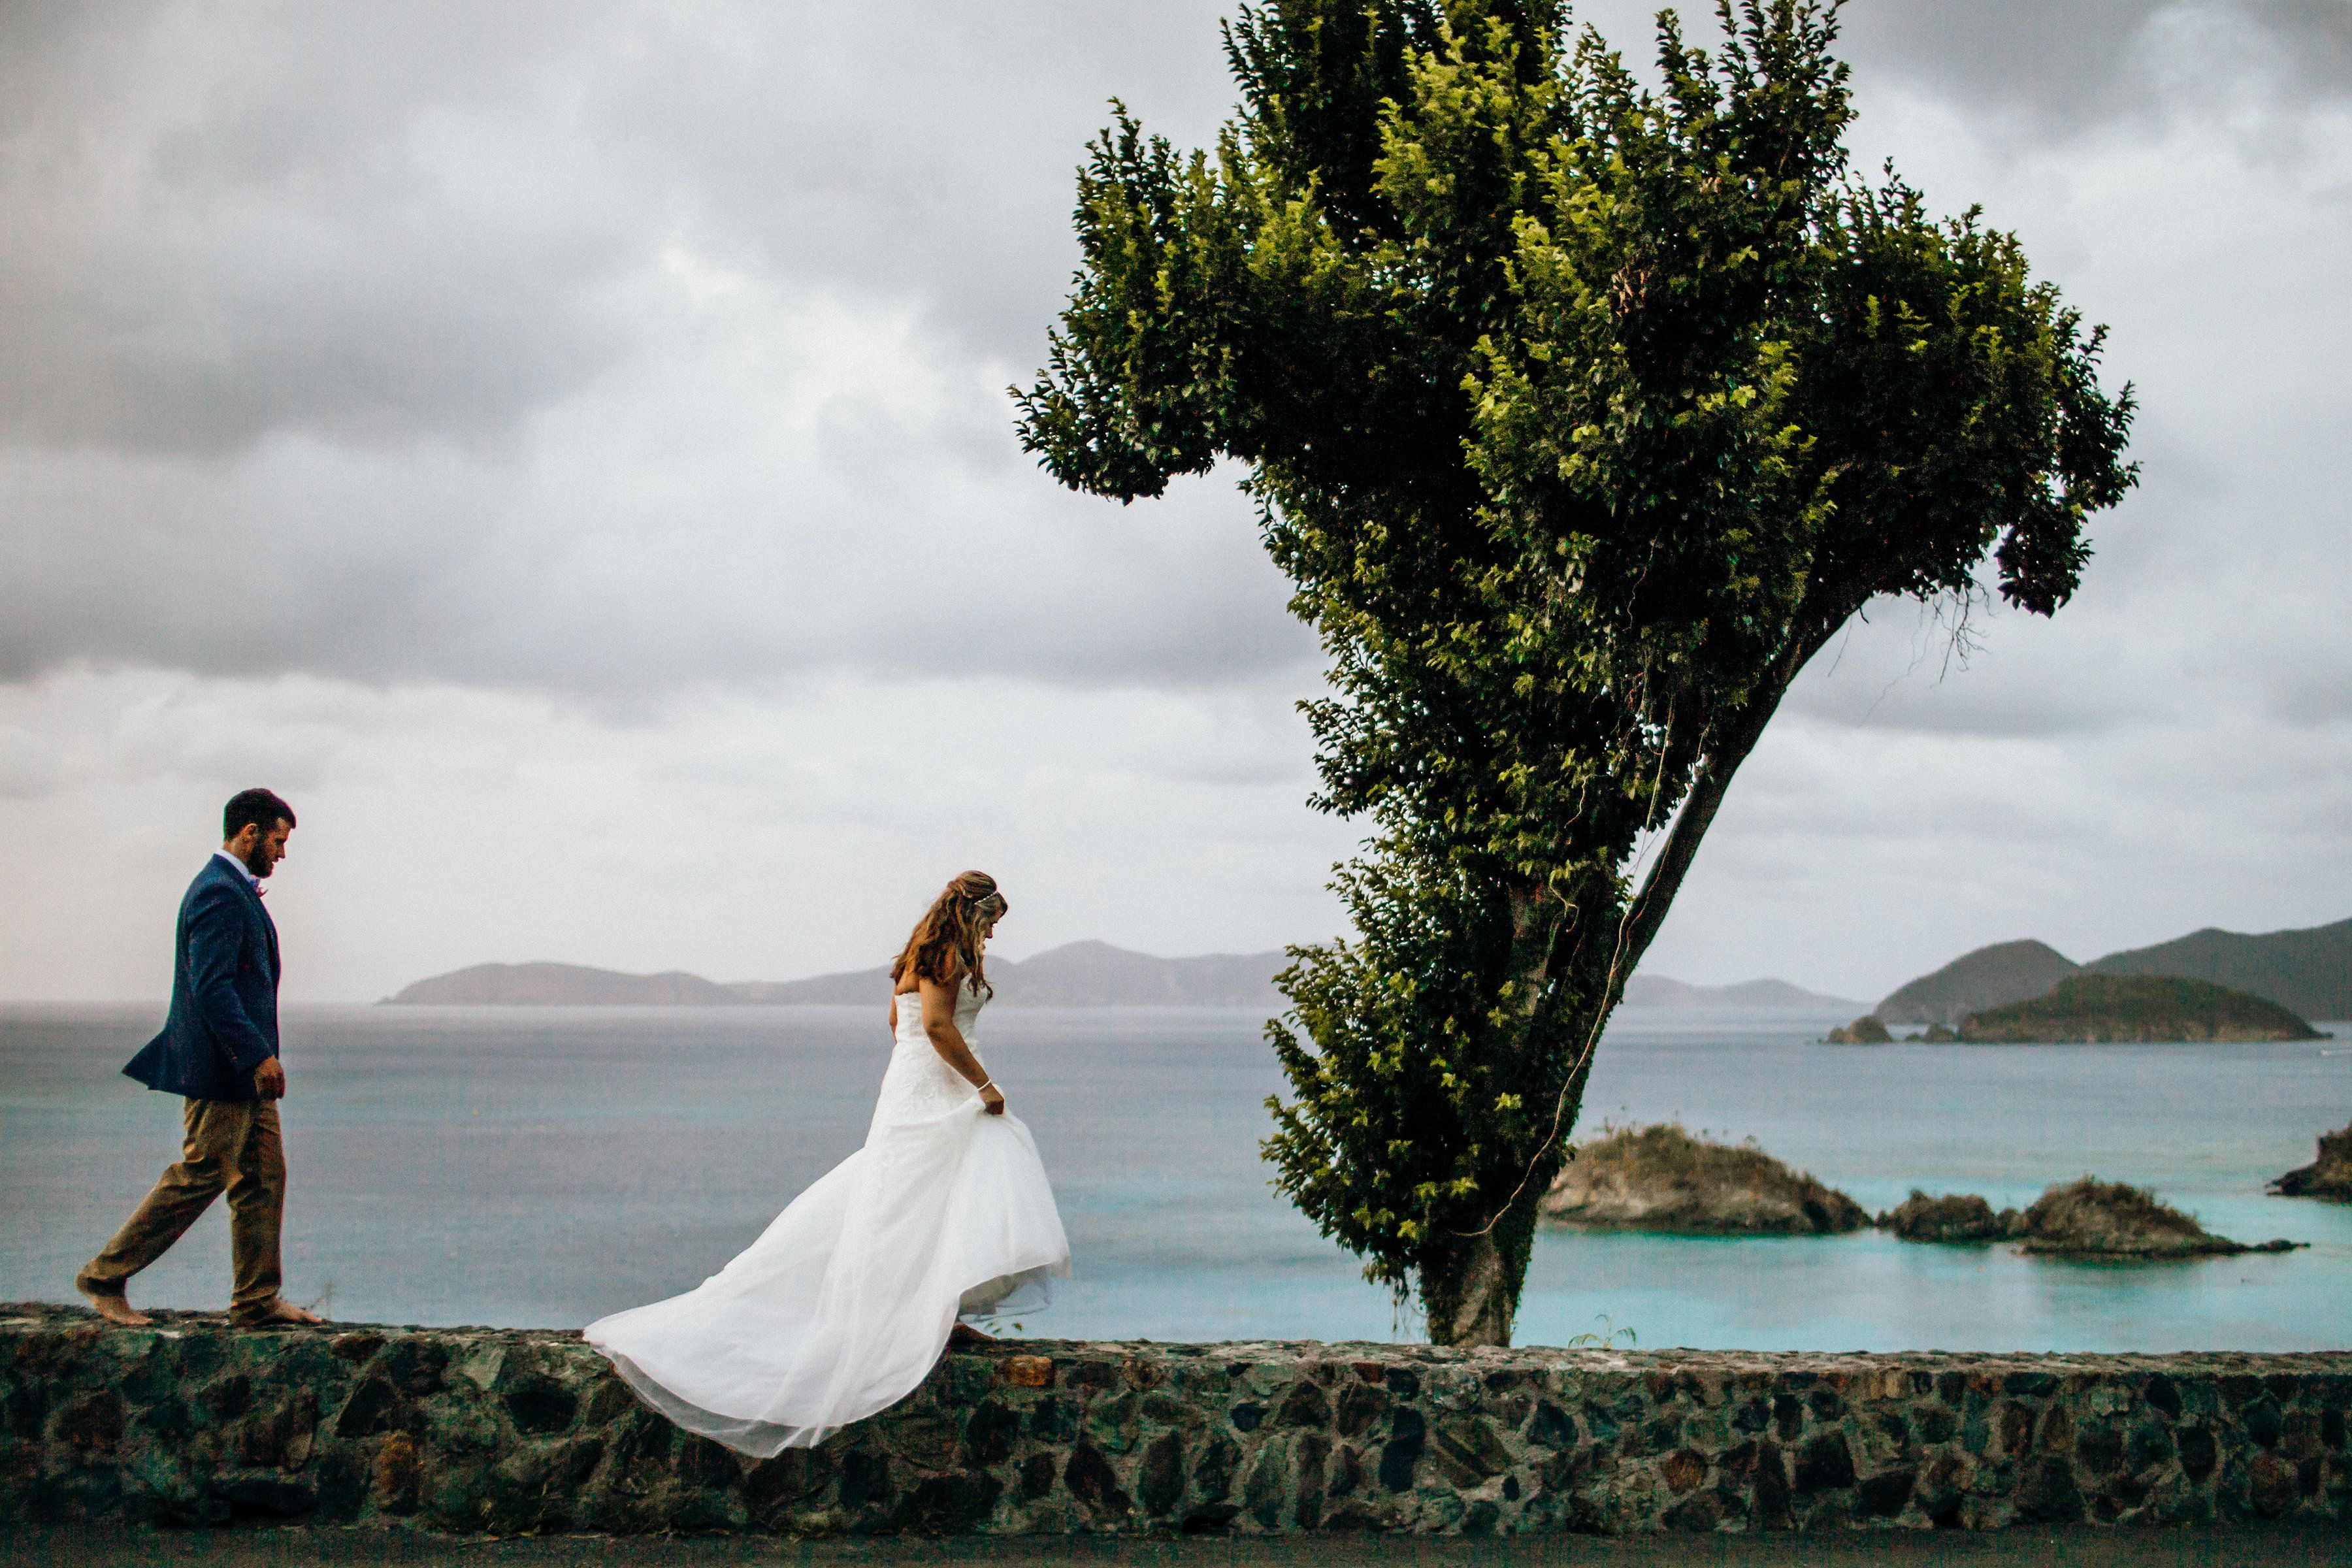 Amber Adam S Darling Beach Wedding In St John Usvi Is On Destination Network Adriana Weddings Now Check Out This